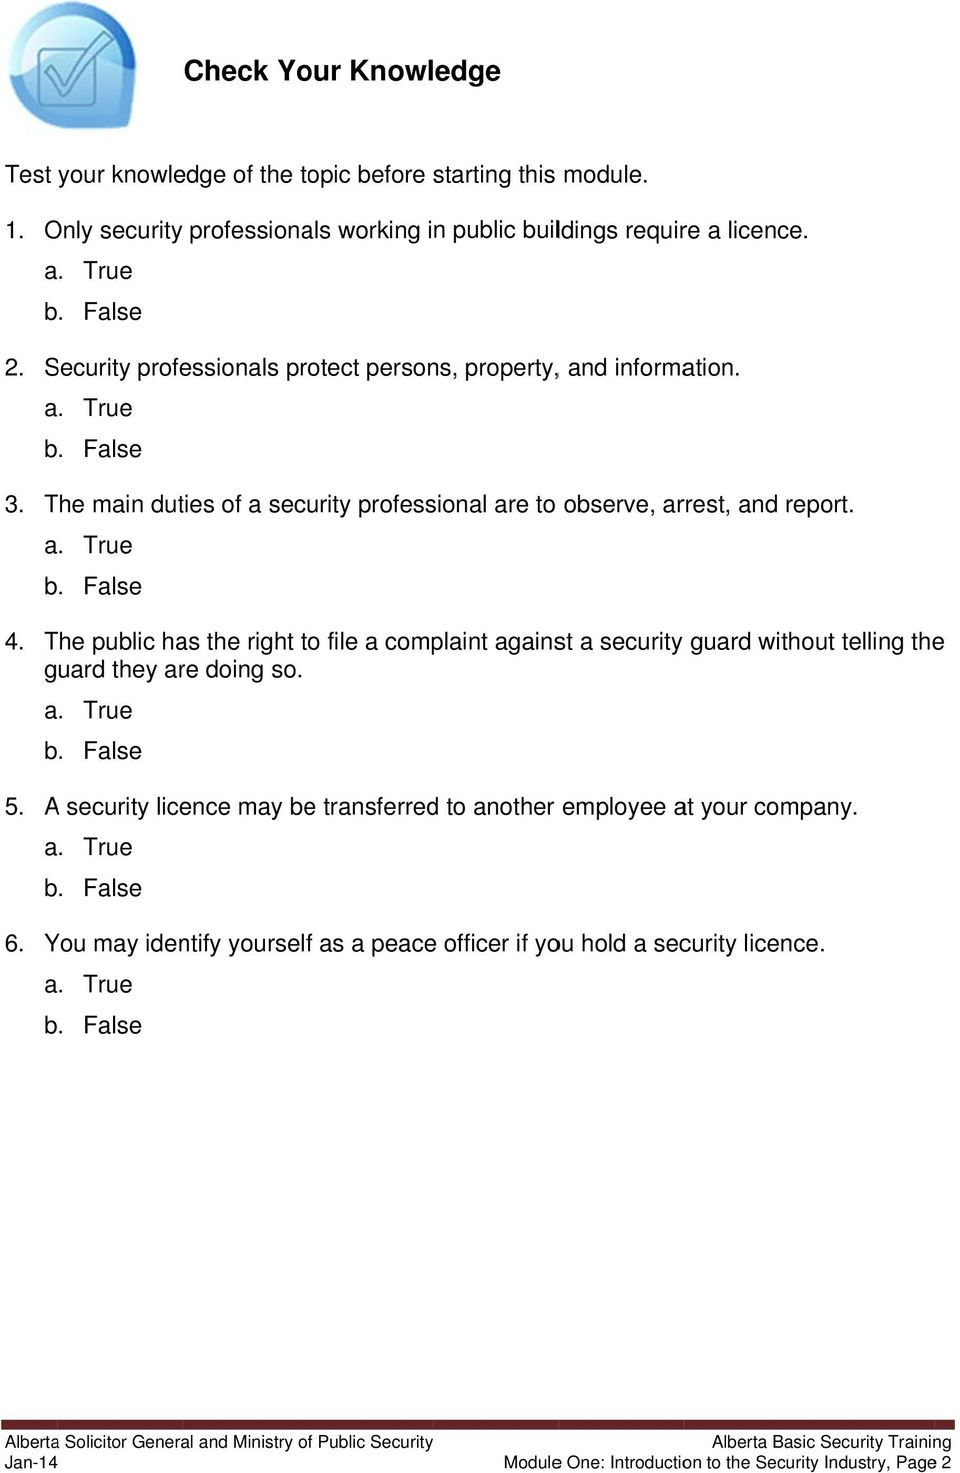 alberta gene eral and ministry c security icipant part pdf the public has the right to file a complaint against a security guard out telling the